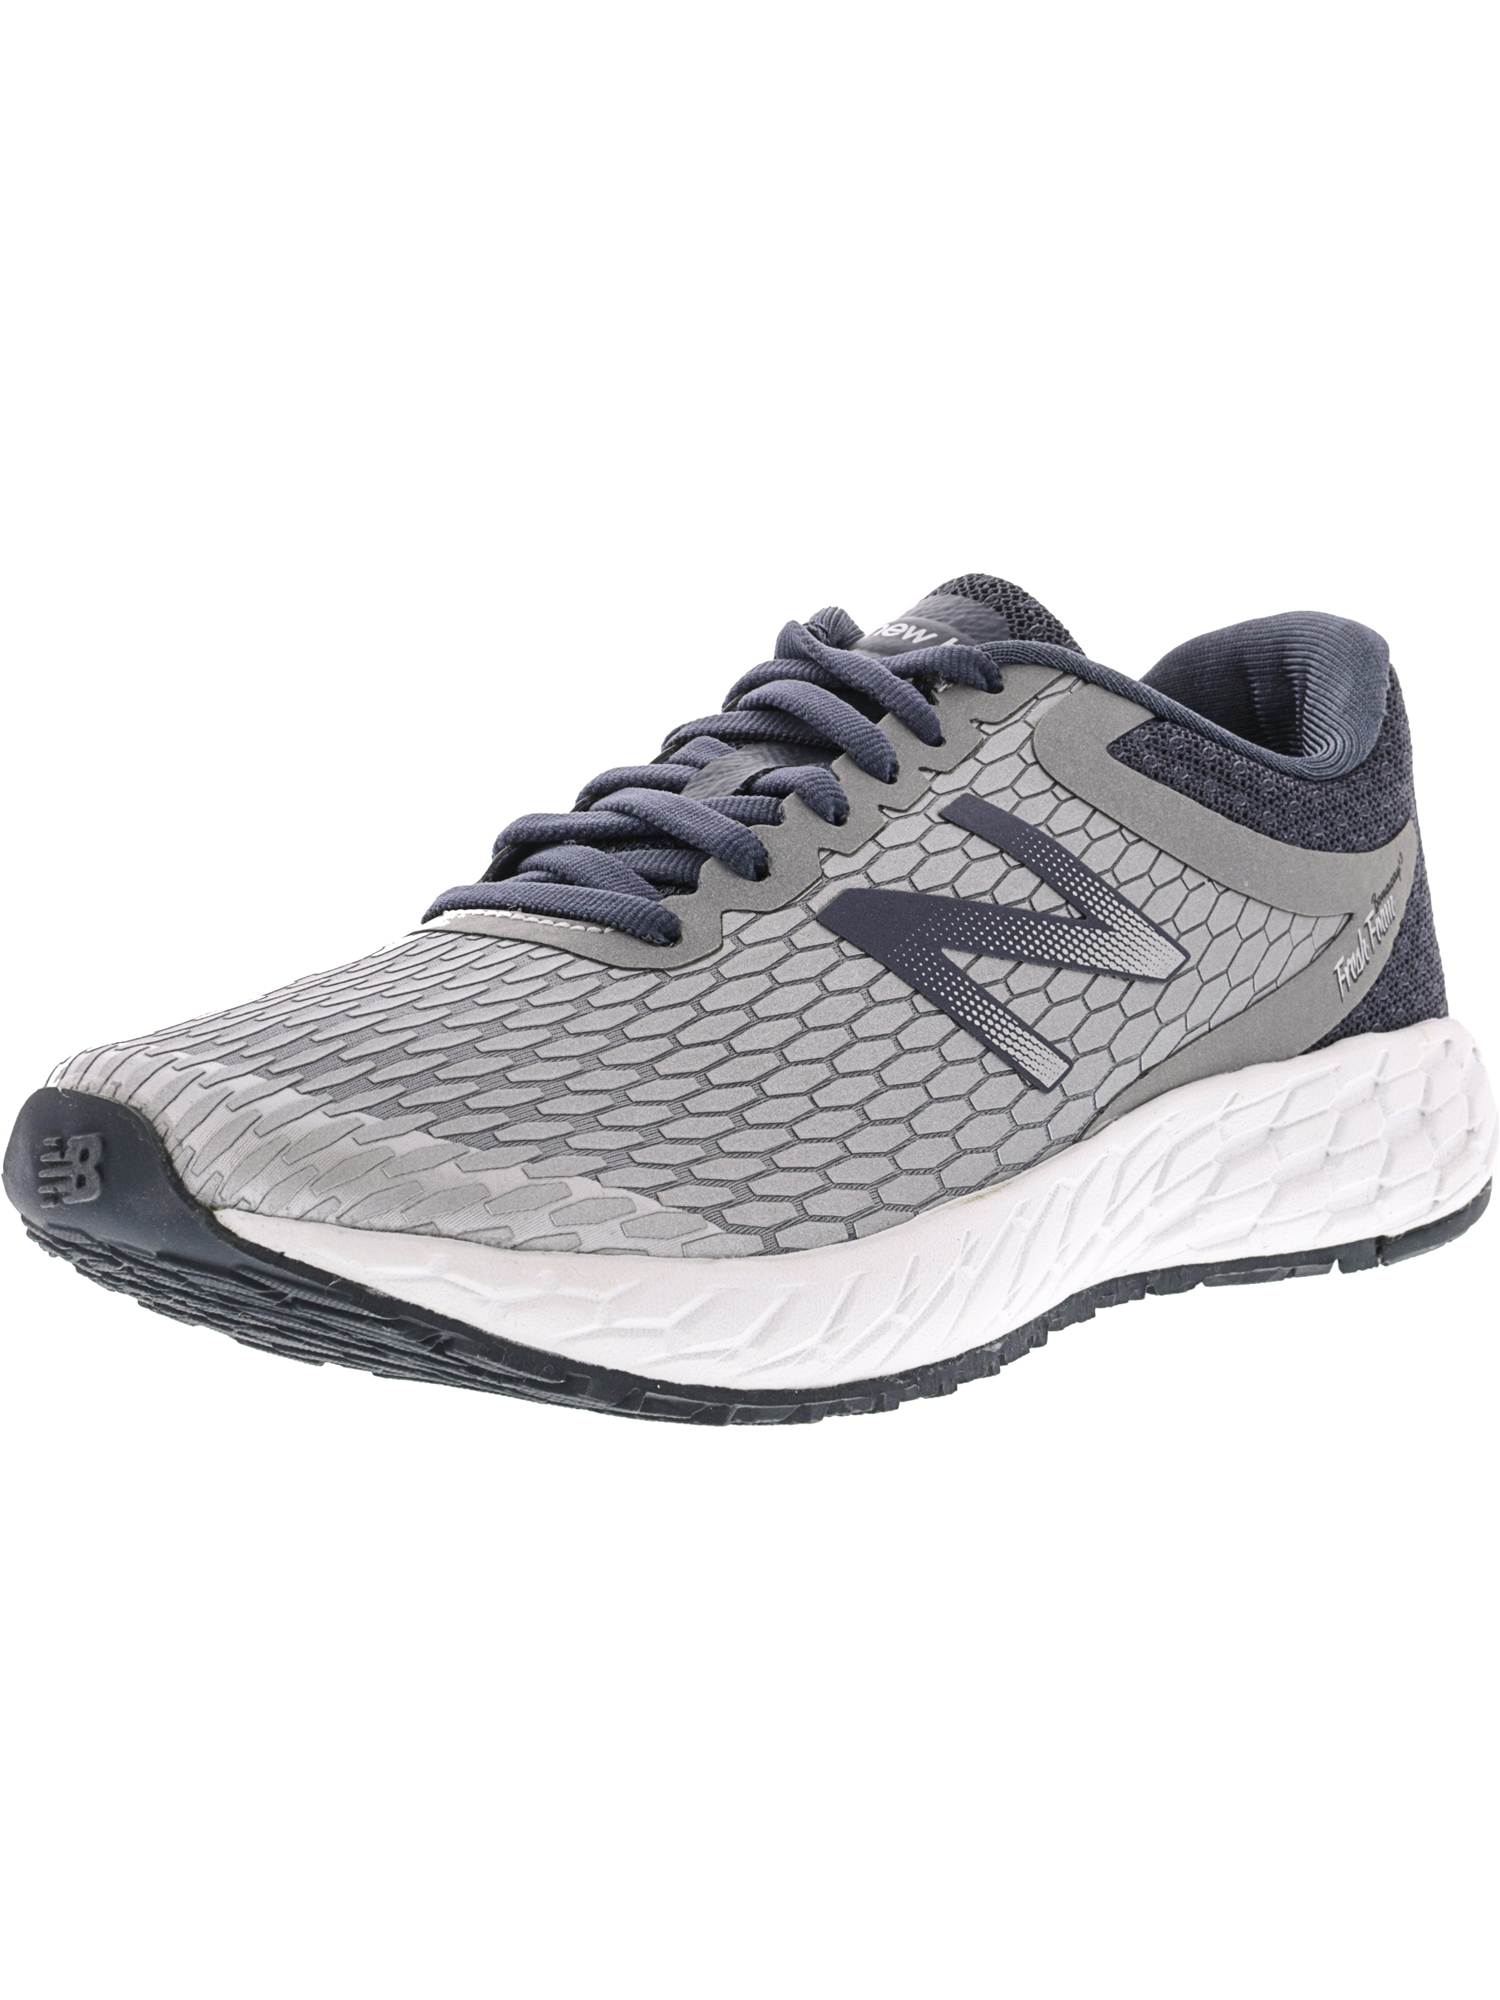 New Balance Women's Wbora Sr3 Ankle-High Running Shoe - 10.5W